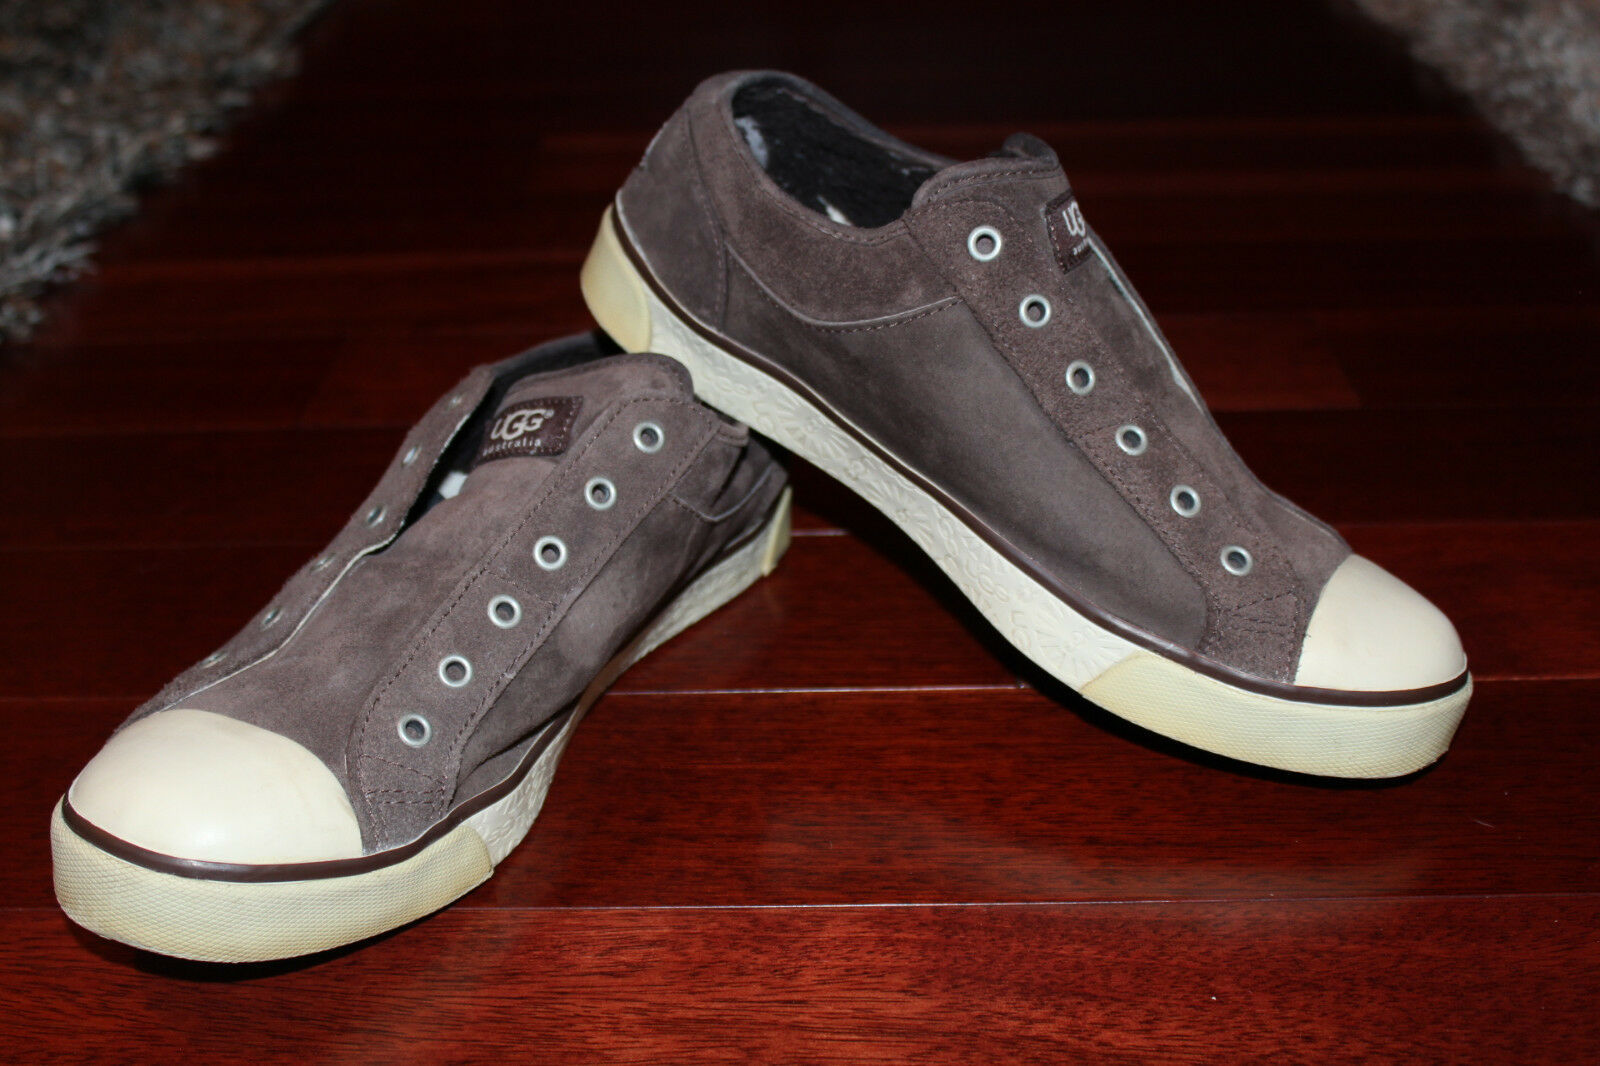 UGG LAELA Suede Brown Sneakers  sz 9.5